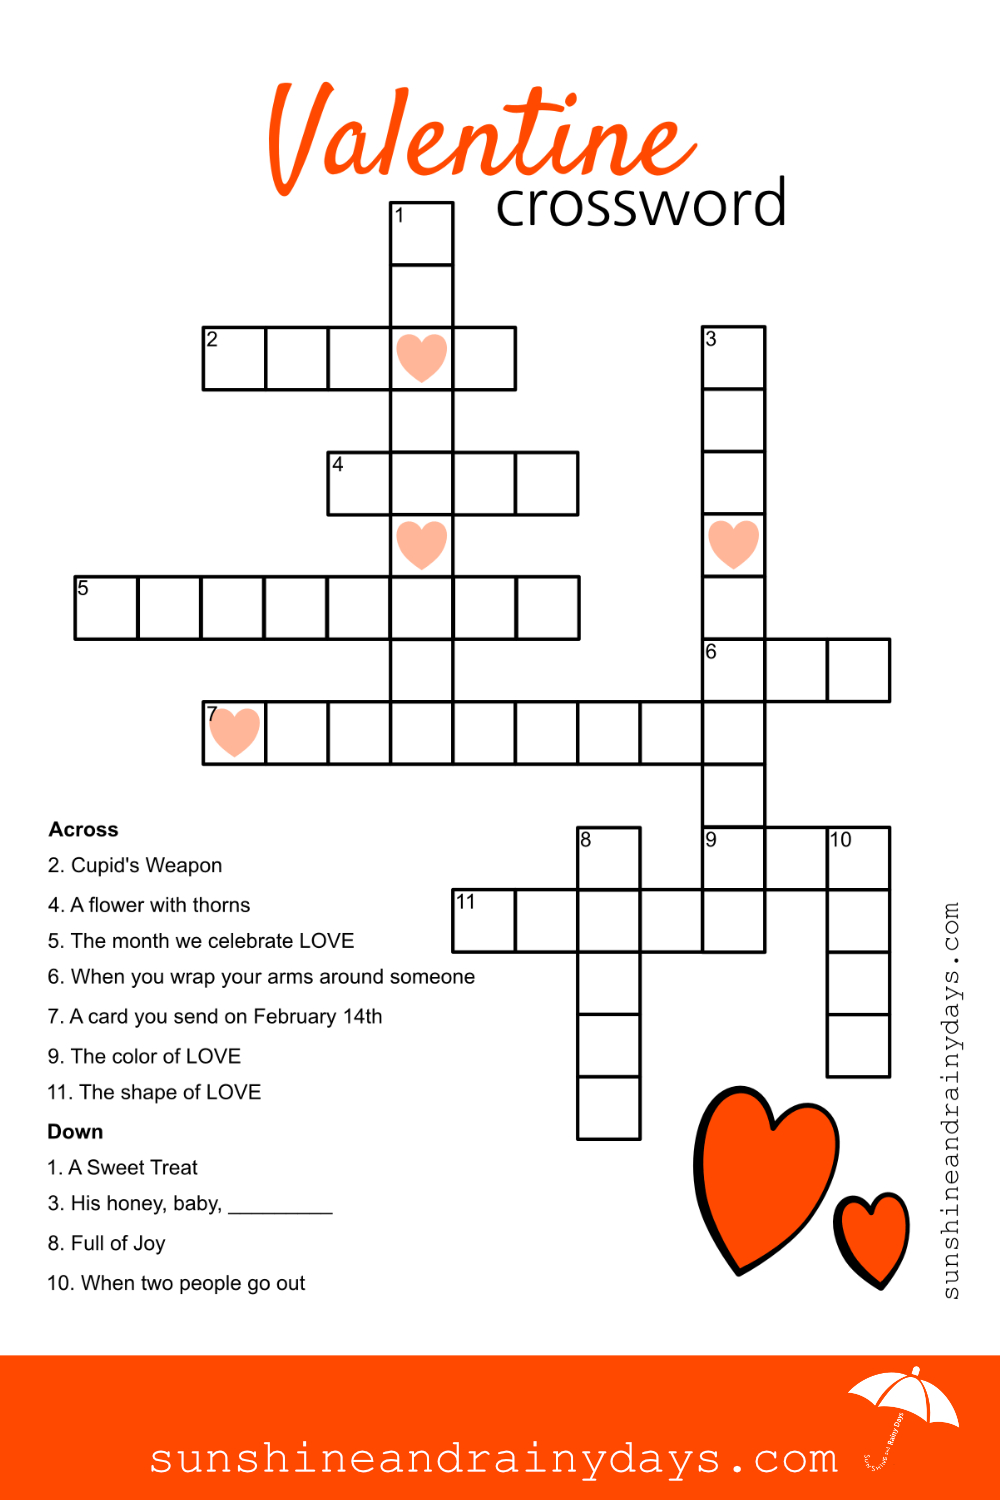 Valentine Crossword Puzzle | Valentine Printables | Crossword, Kids - Valentine Crossword Puzzles Printable